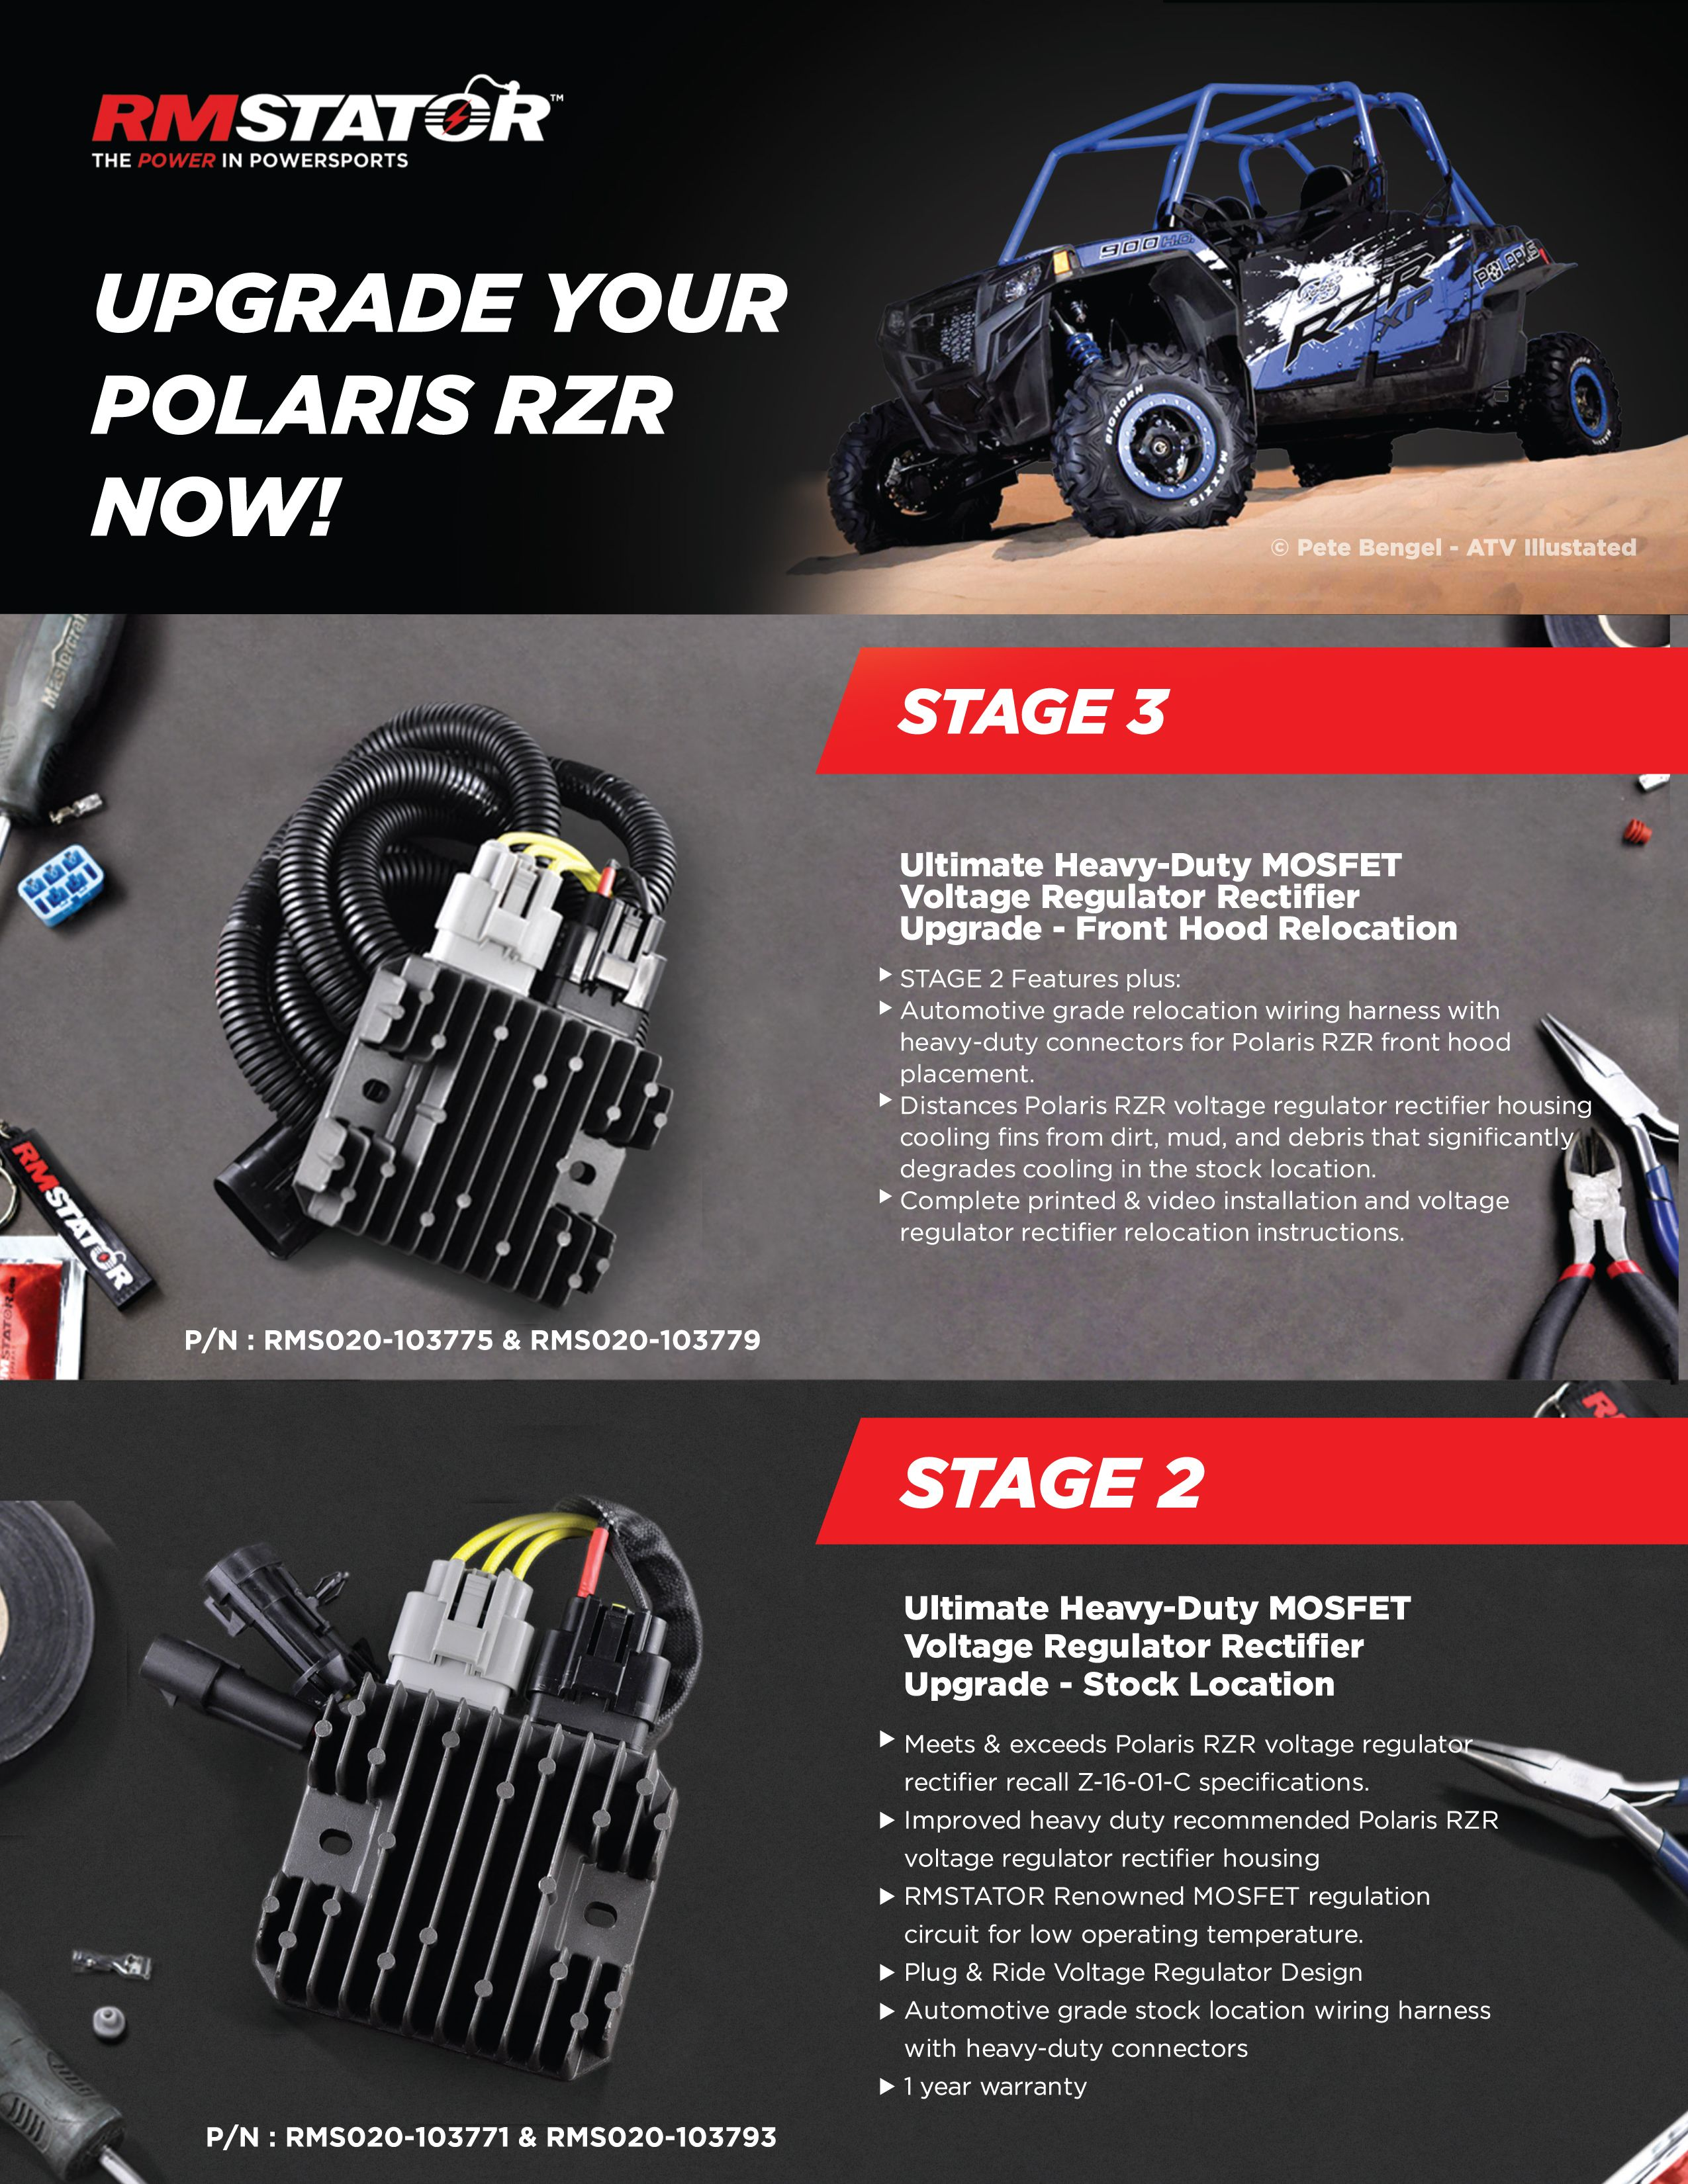 Pin By Moxie On Rm Stator Voltage Regulator Powersports Rzr